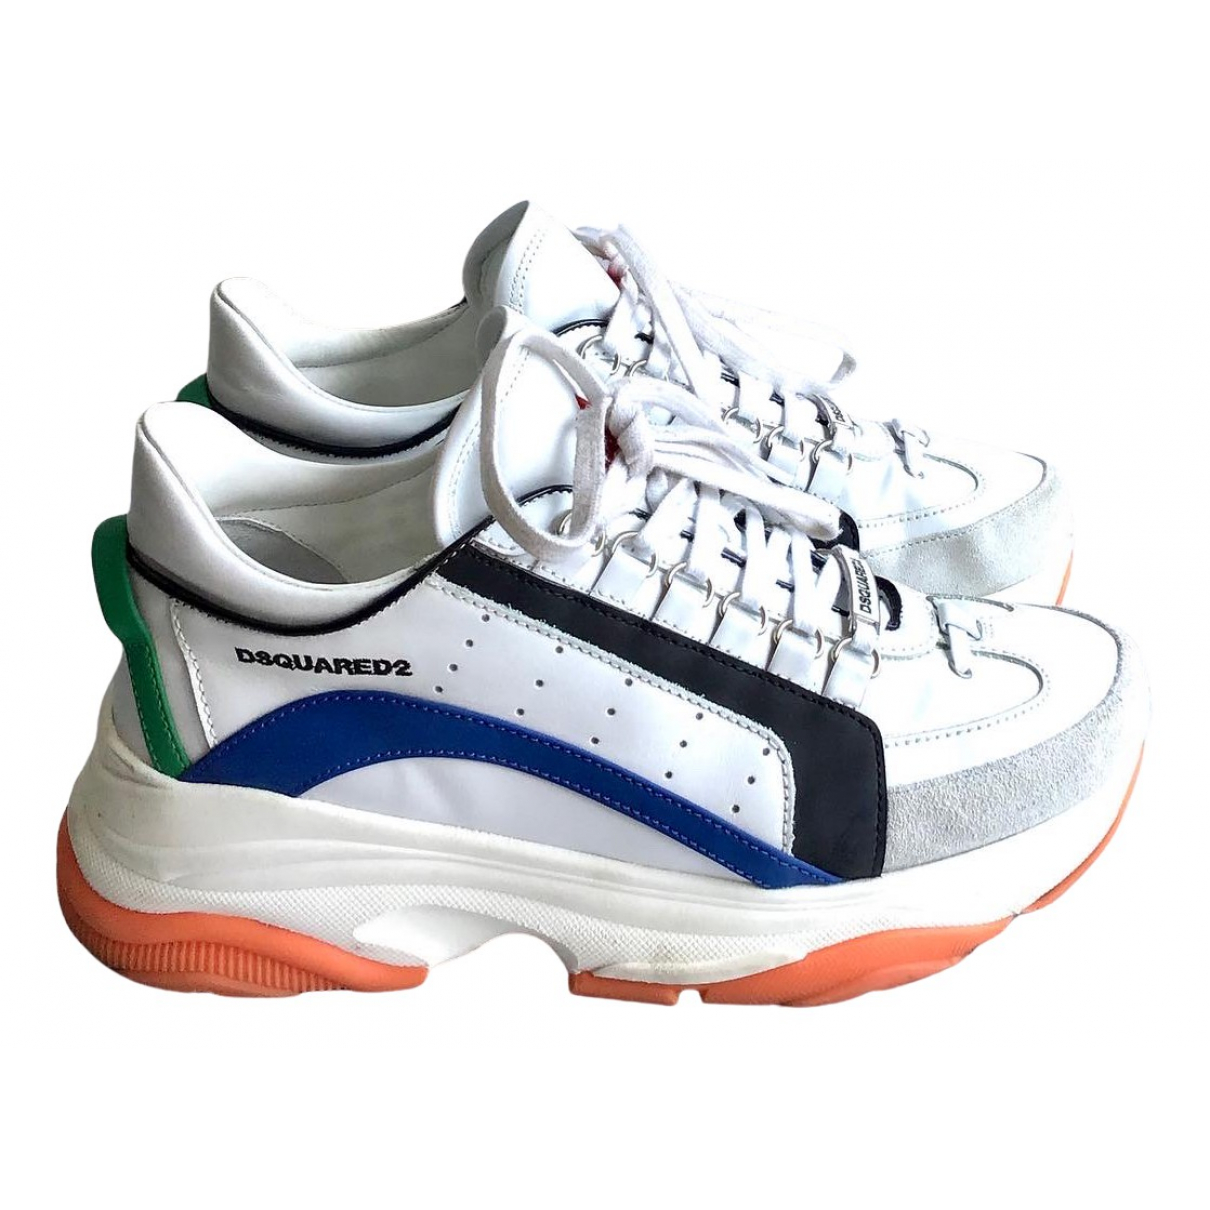 Dsquared2 551 Sneakers in  Weiss Leder